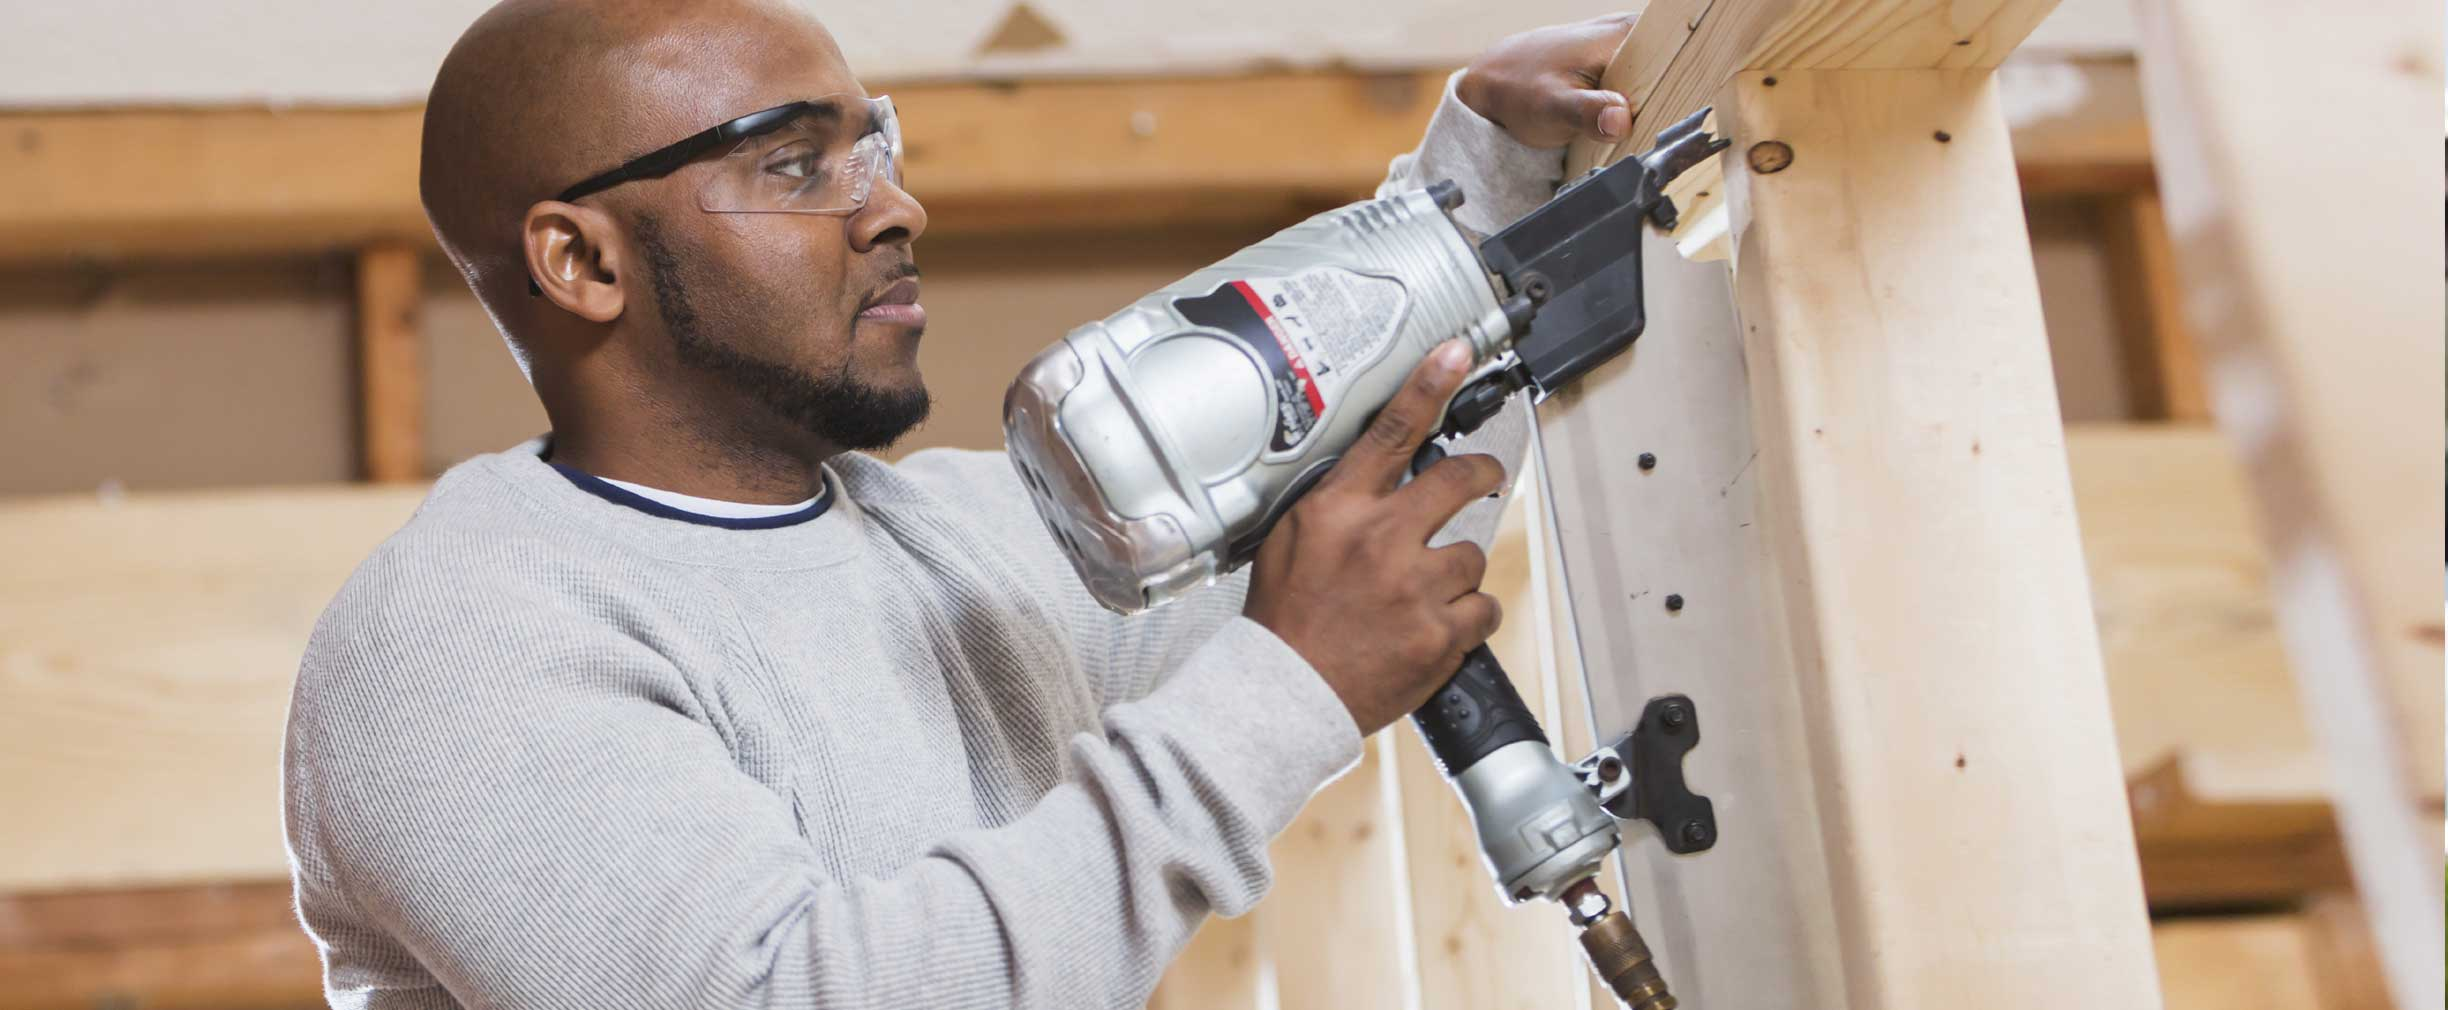 remodeling and home improvement tips